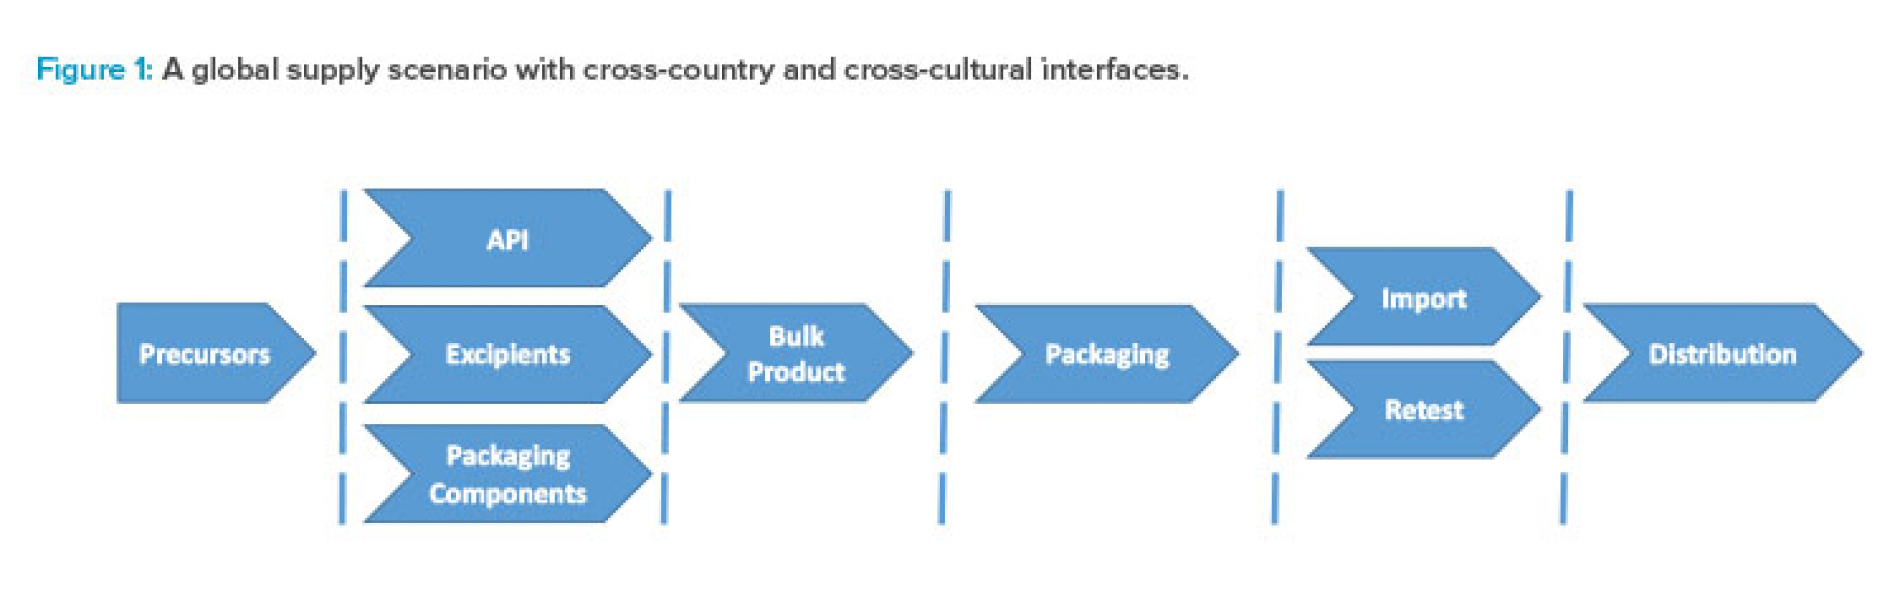 Figure 1: A global supply scenario with cross-country and cross-cultural interfaces